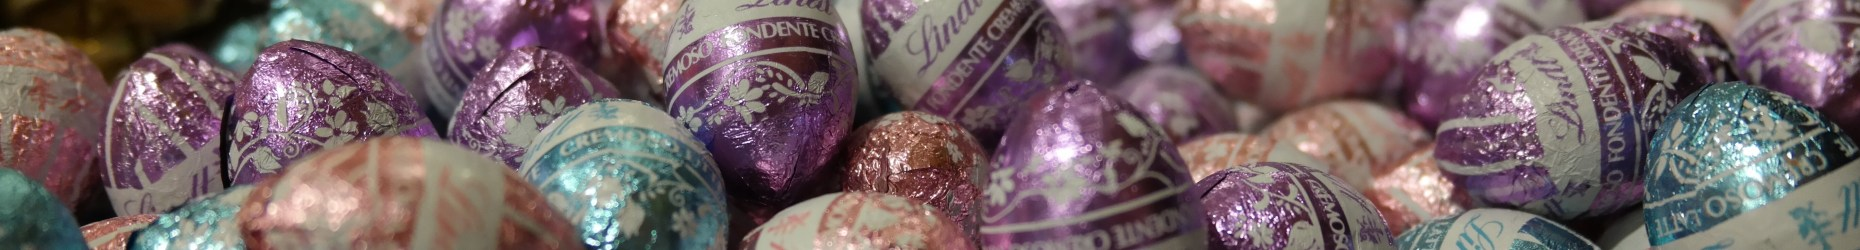 Lindt Store:  Easter Bunny Heaven